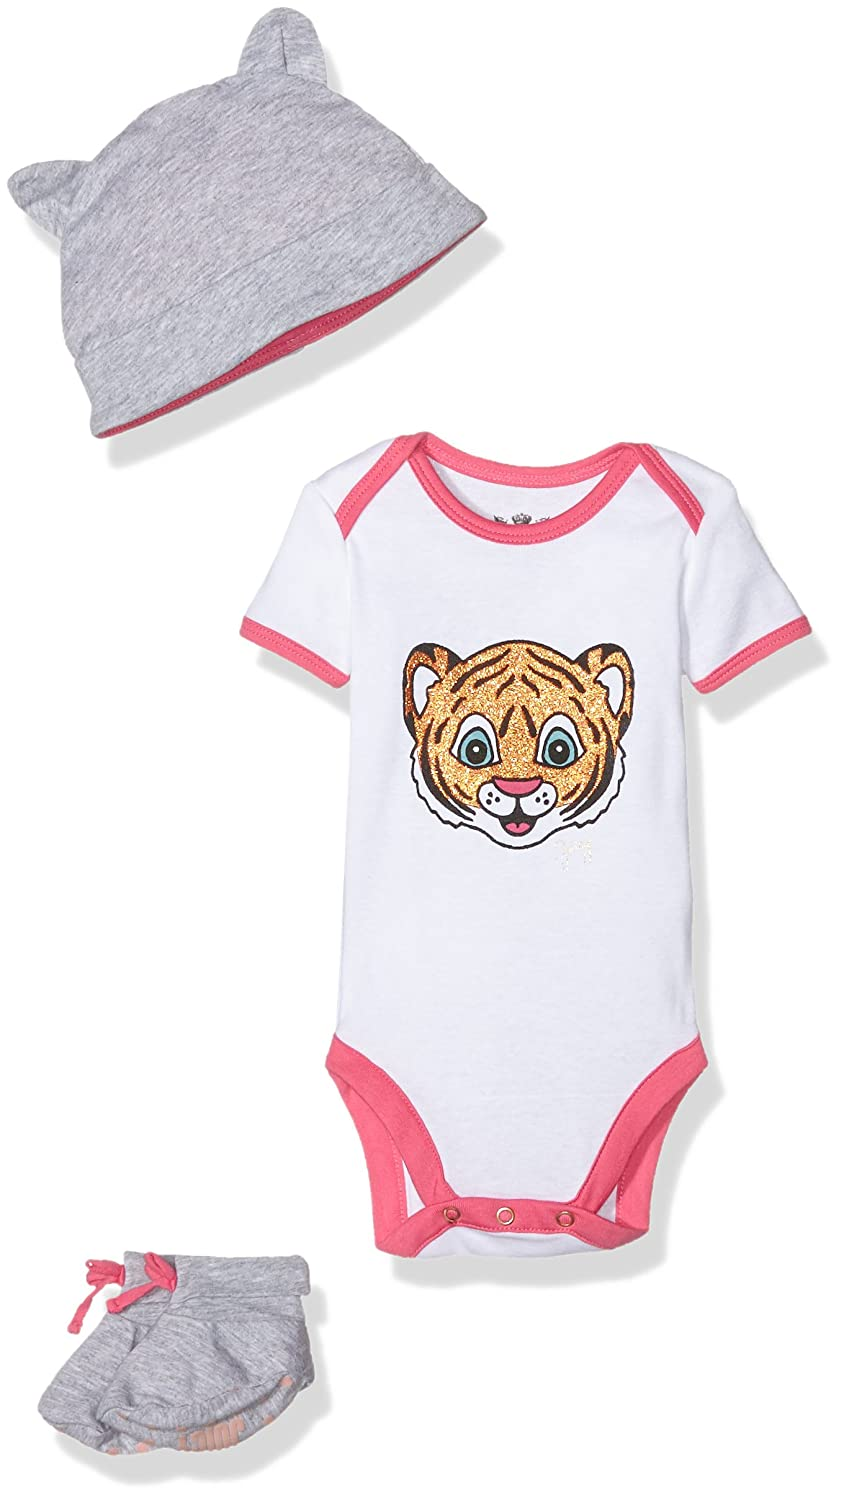 Juicy Couture Baby-Mädchen Body Knt Bodysuit Set